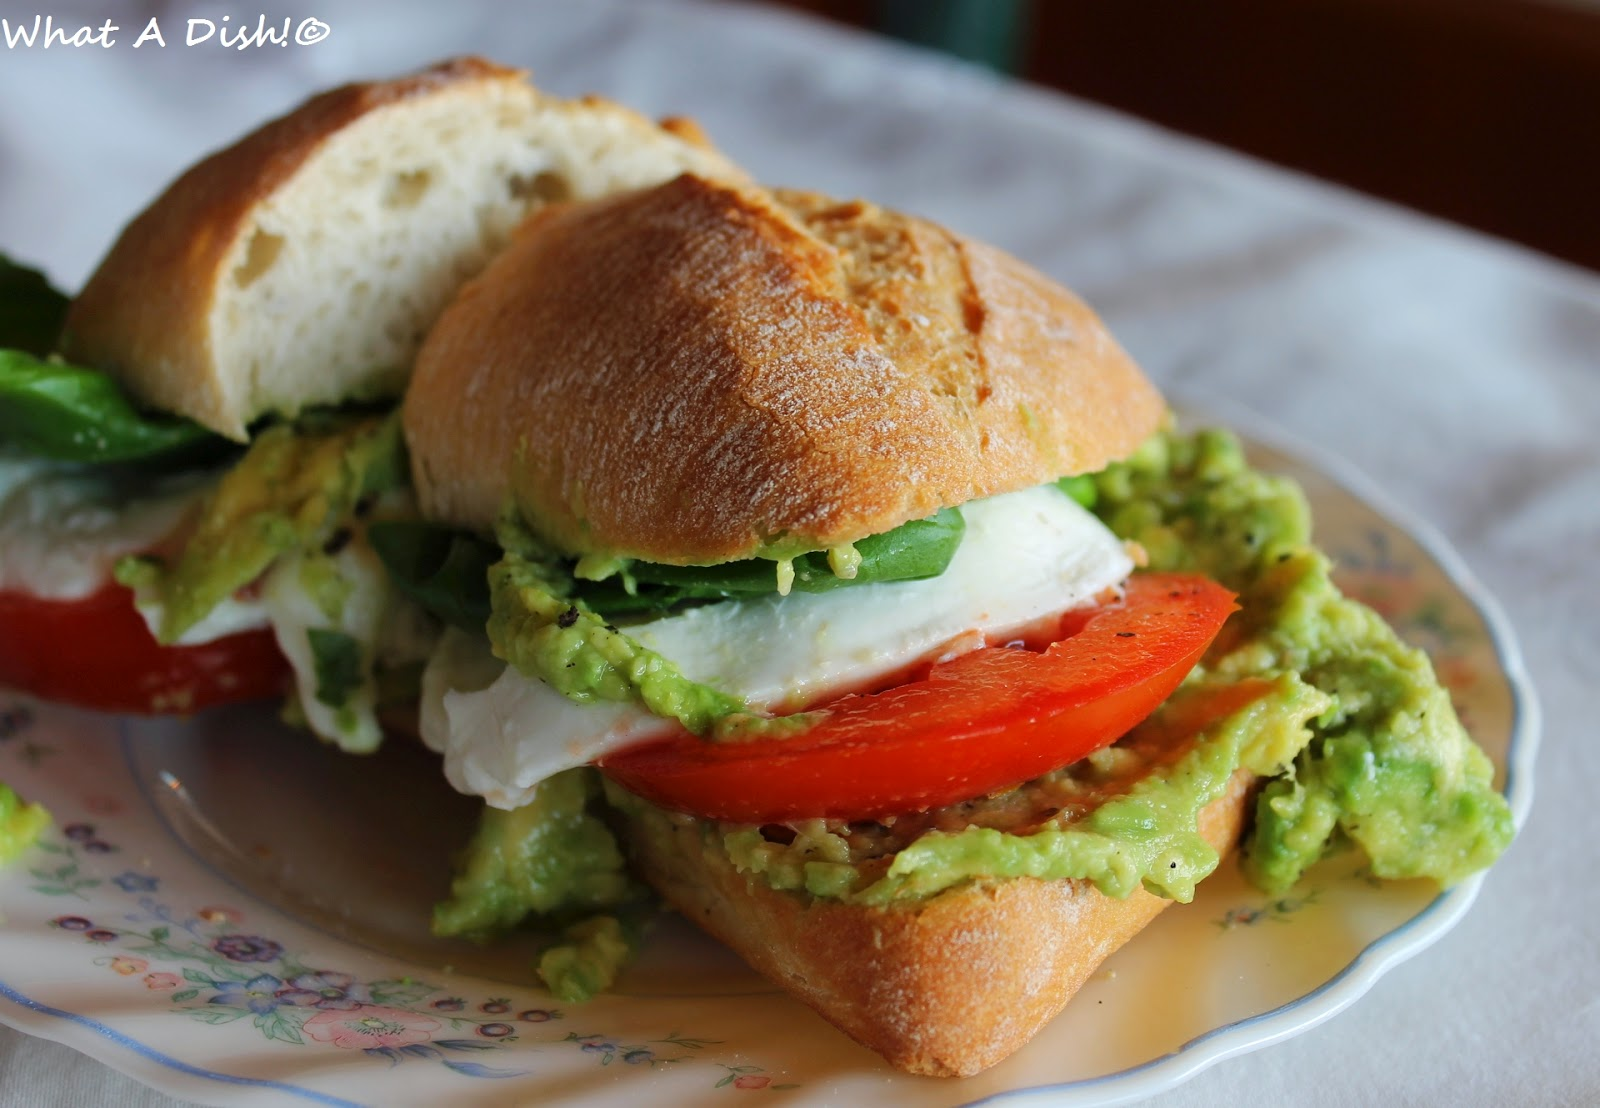 What A Dish!: Mozzacado Sandwich